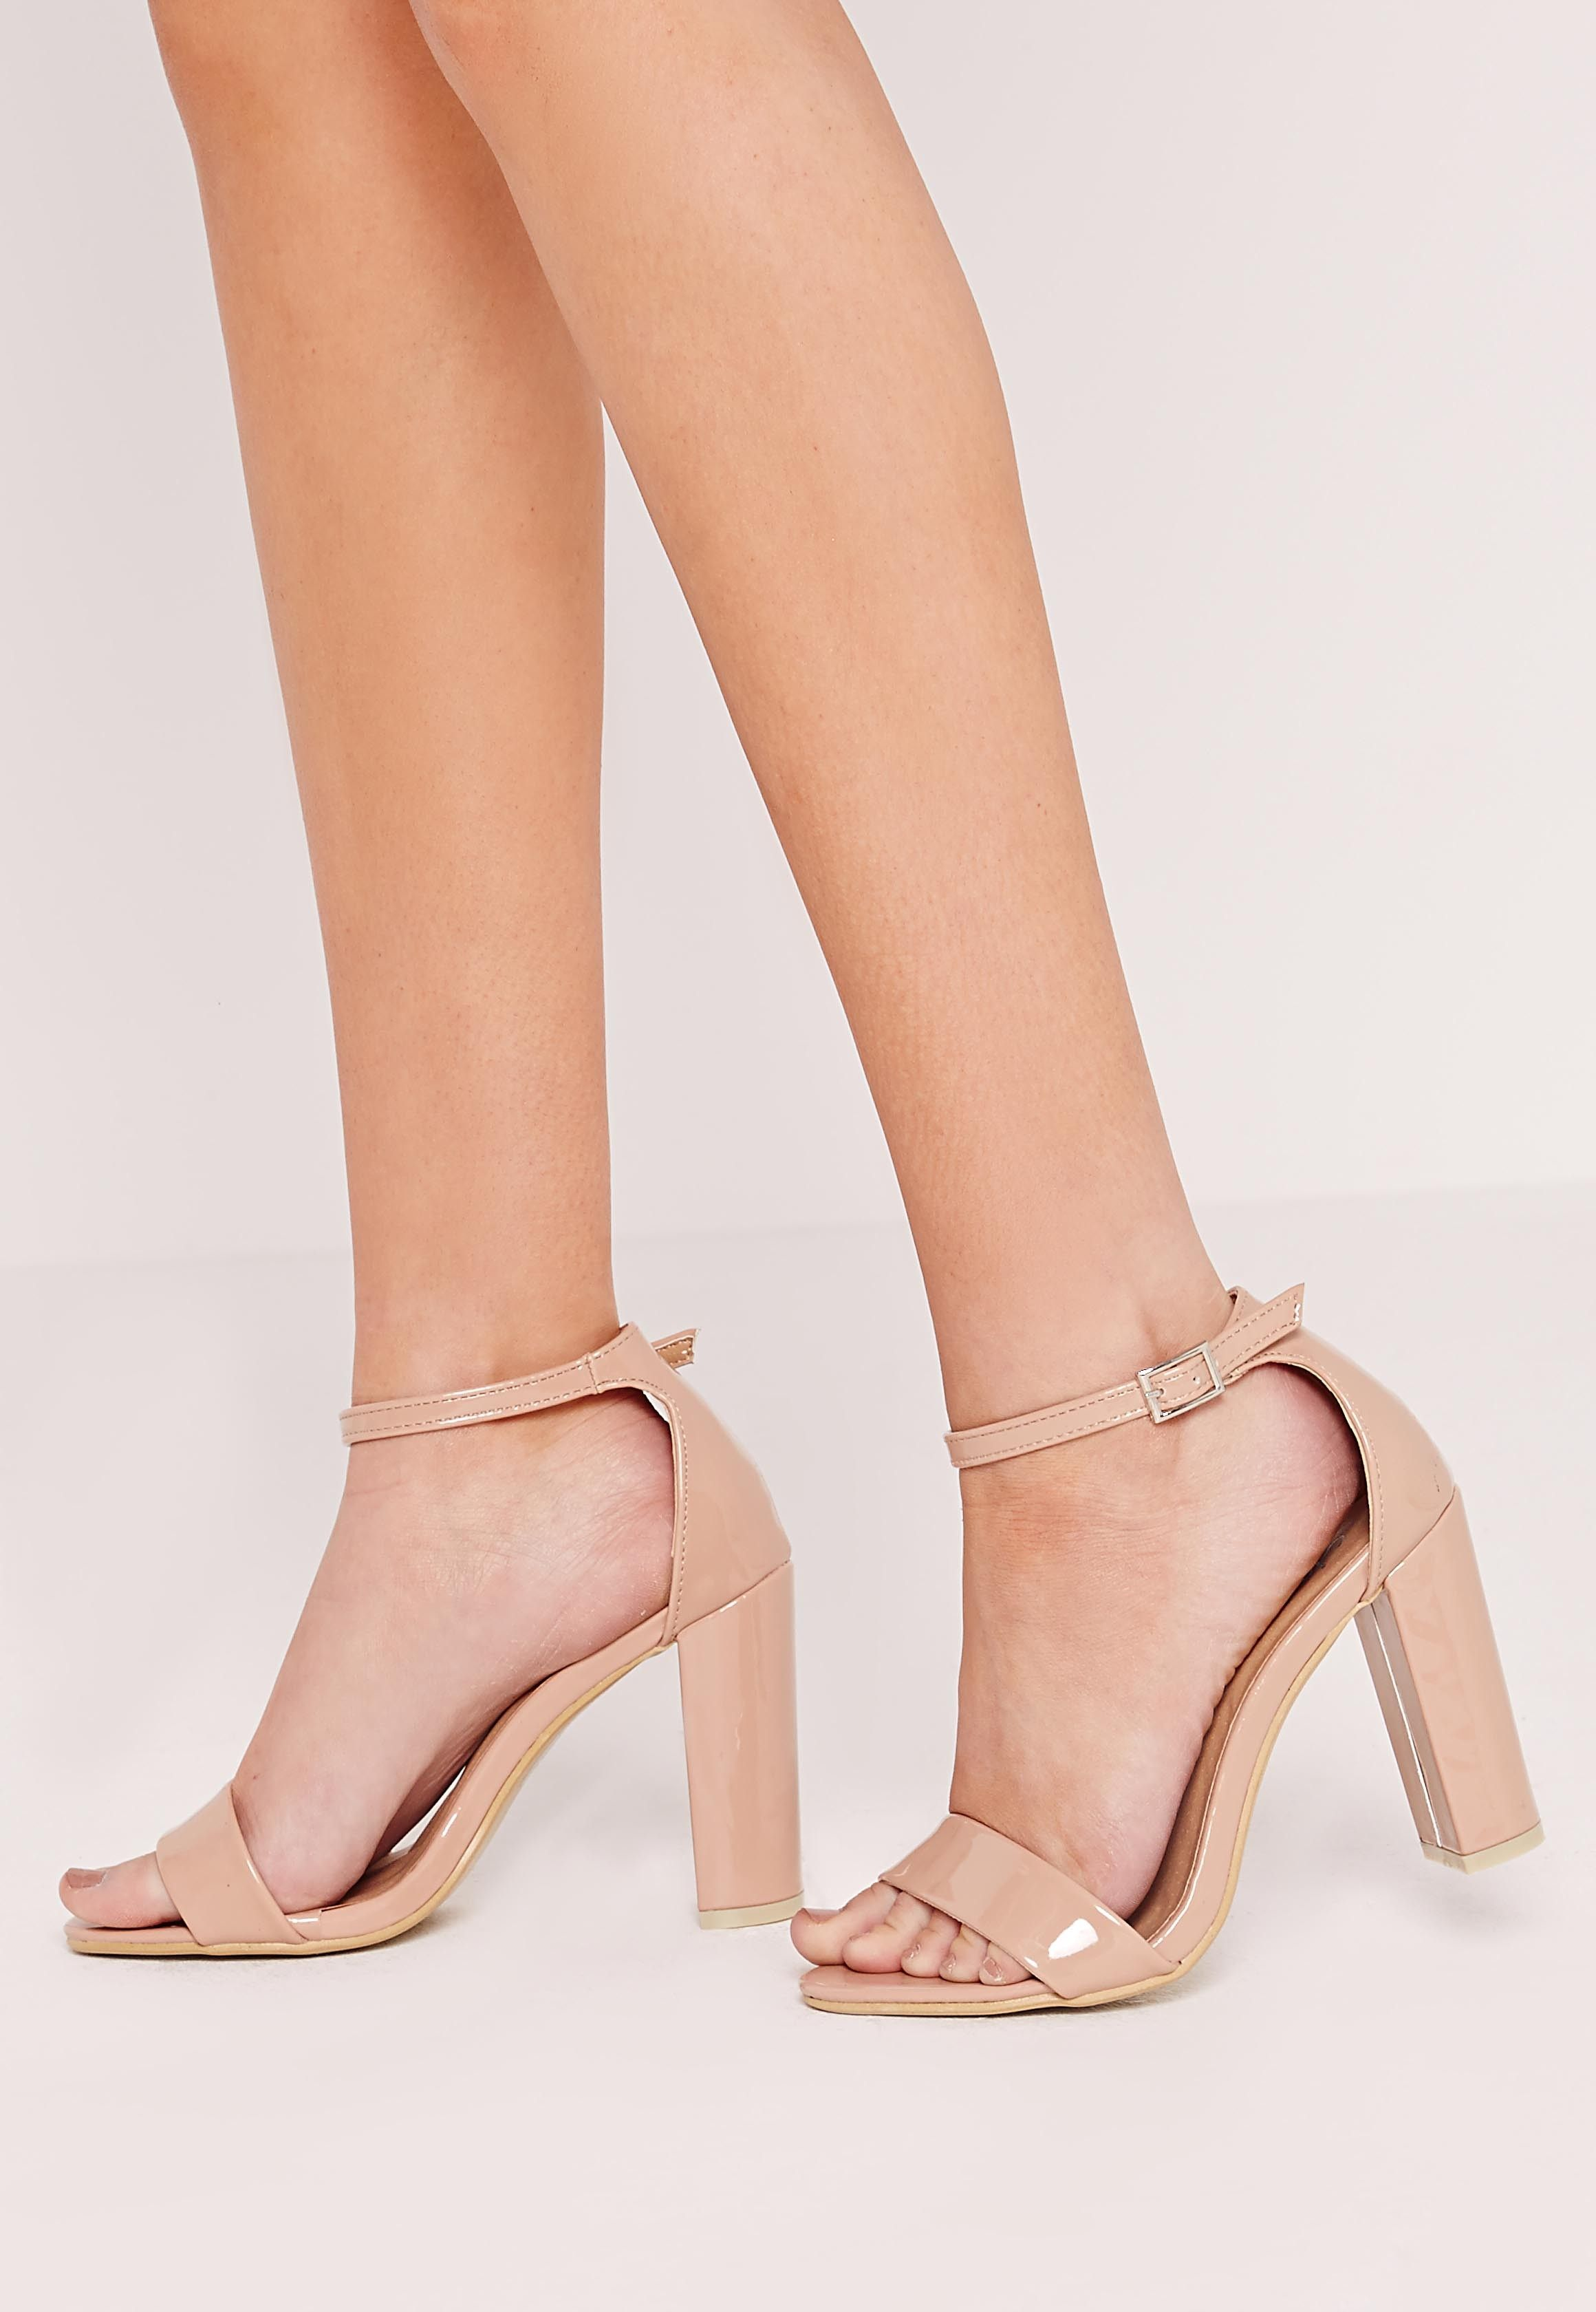 7ef634118d0d63 Missguided - Block heel thick strap barely there sandals nude ...